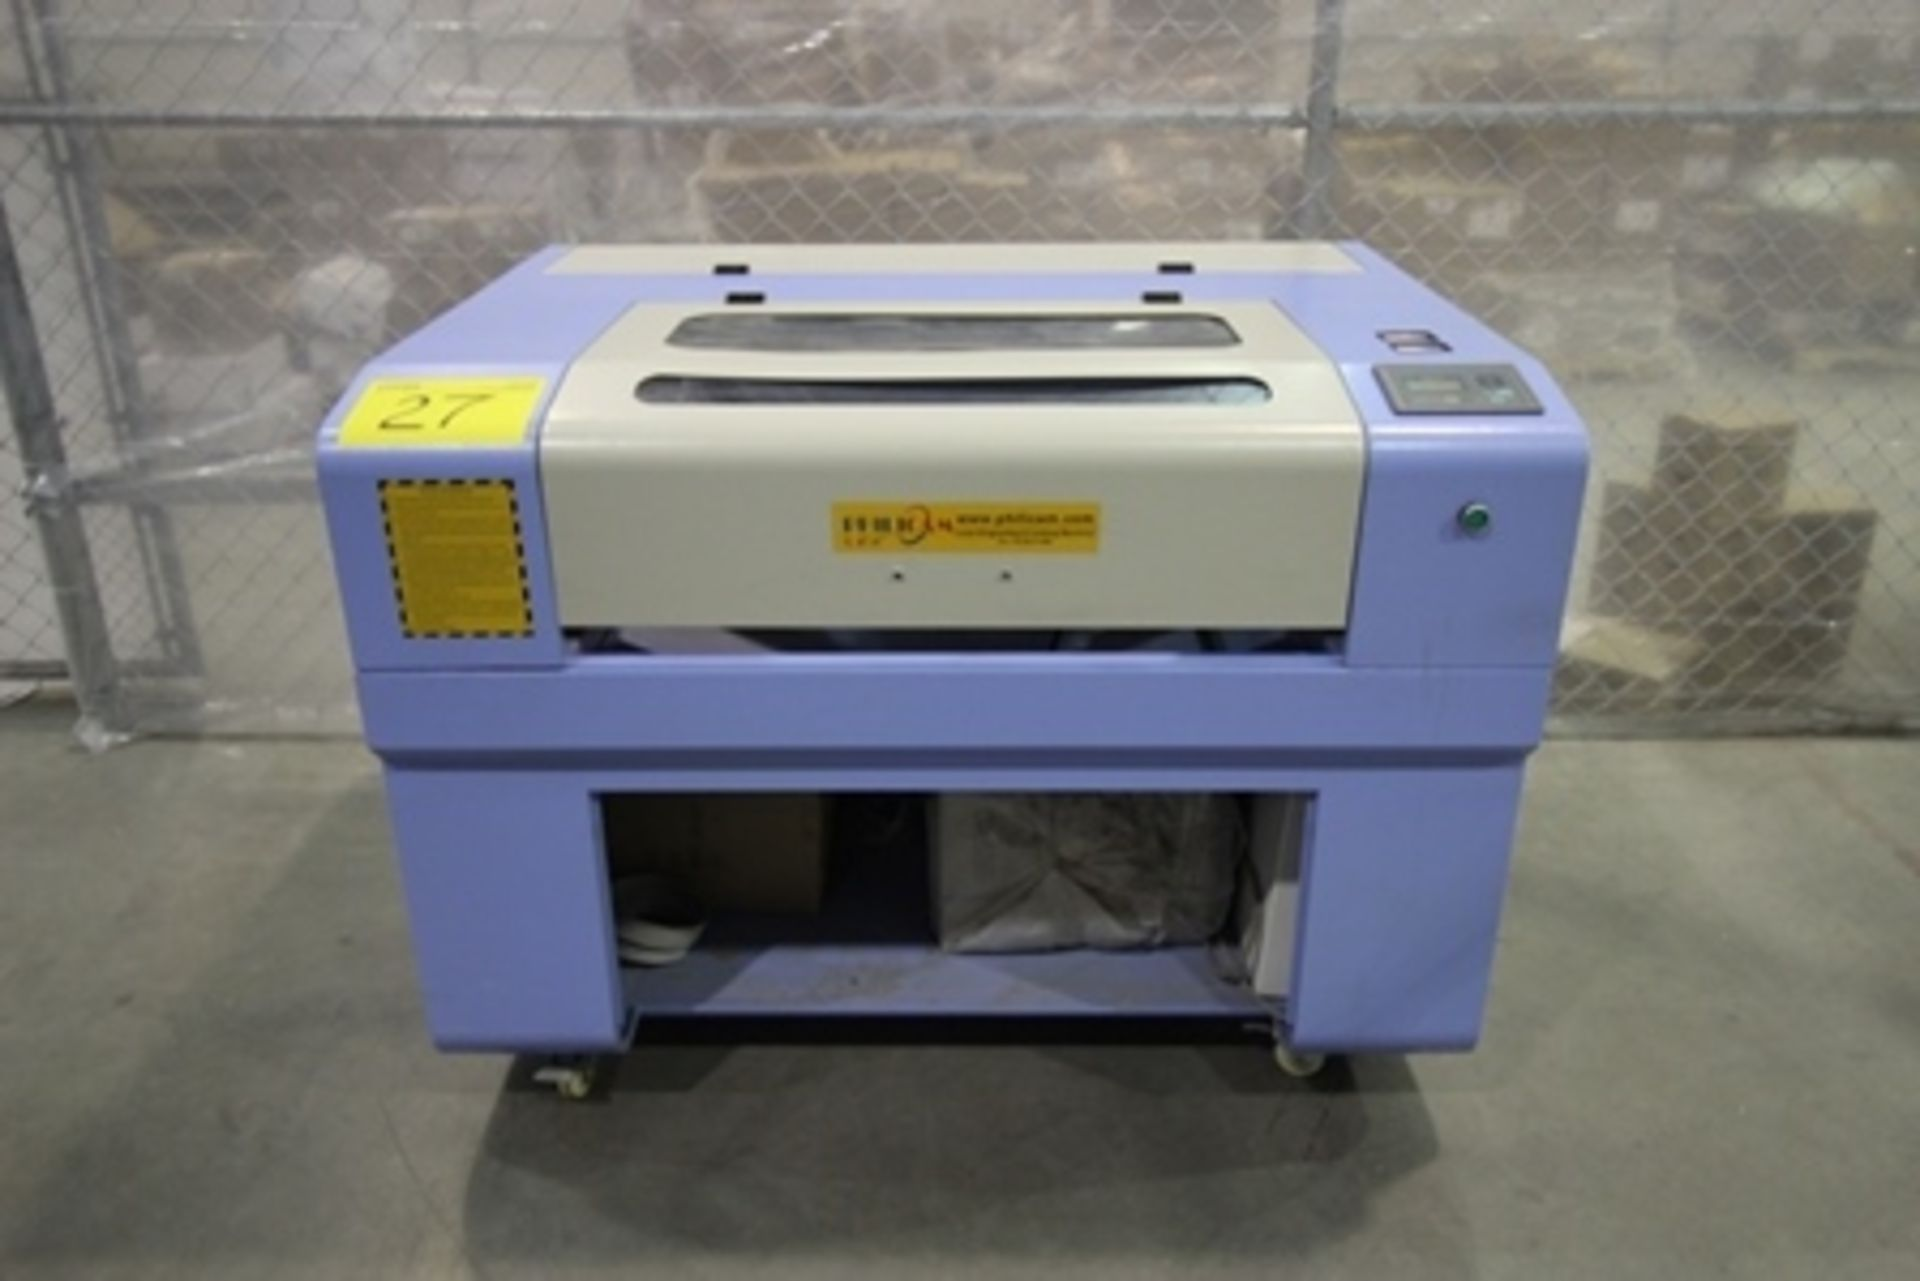 Lot 27 - 2017 Phillican CO2 laser engraver and cutting machine, model 6090. Laser power: 80x2w, 3.2Kw, series